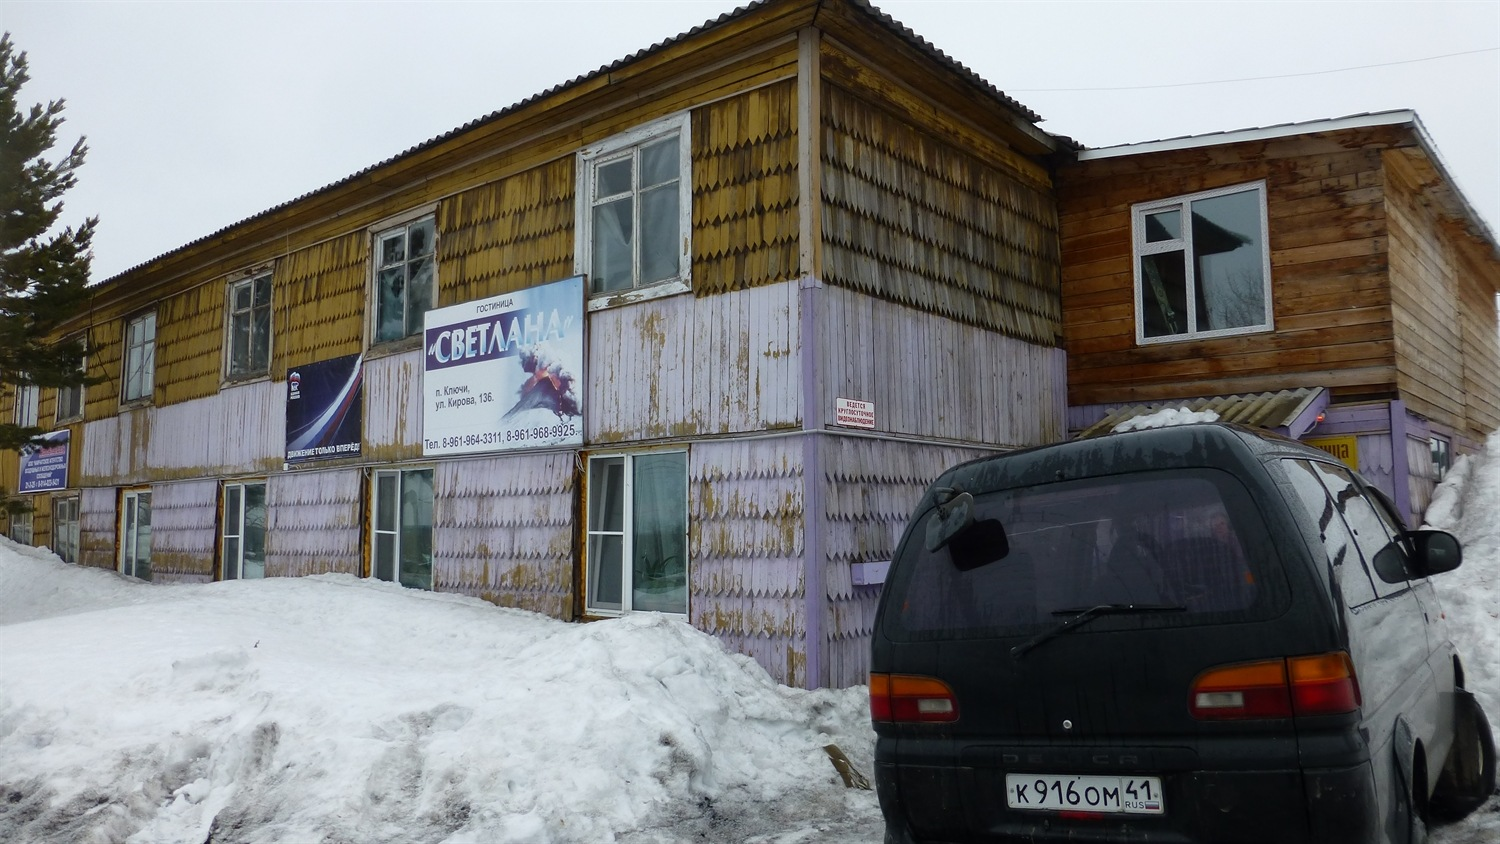 Home sweet home, our hotel in Klyuchi